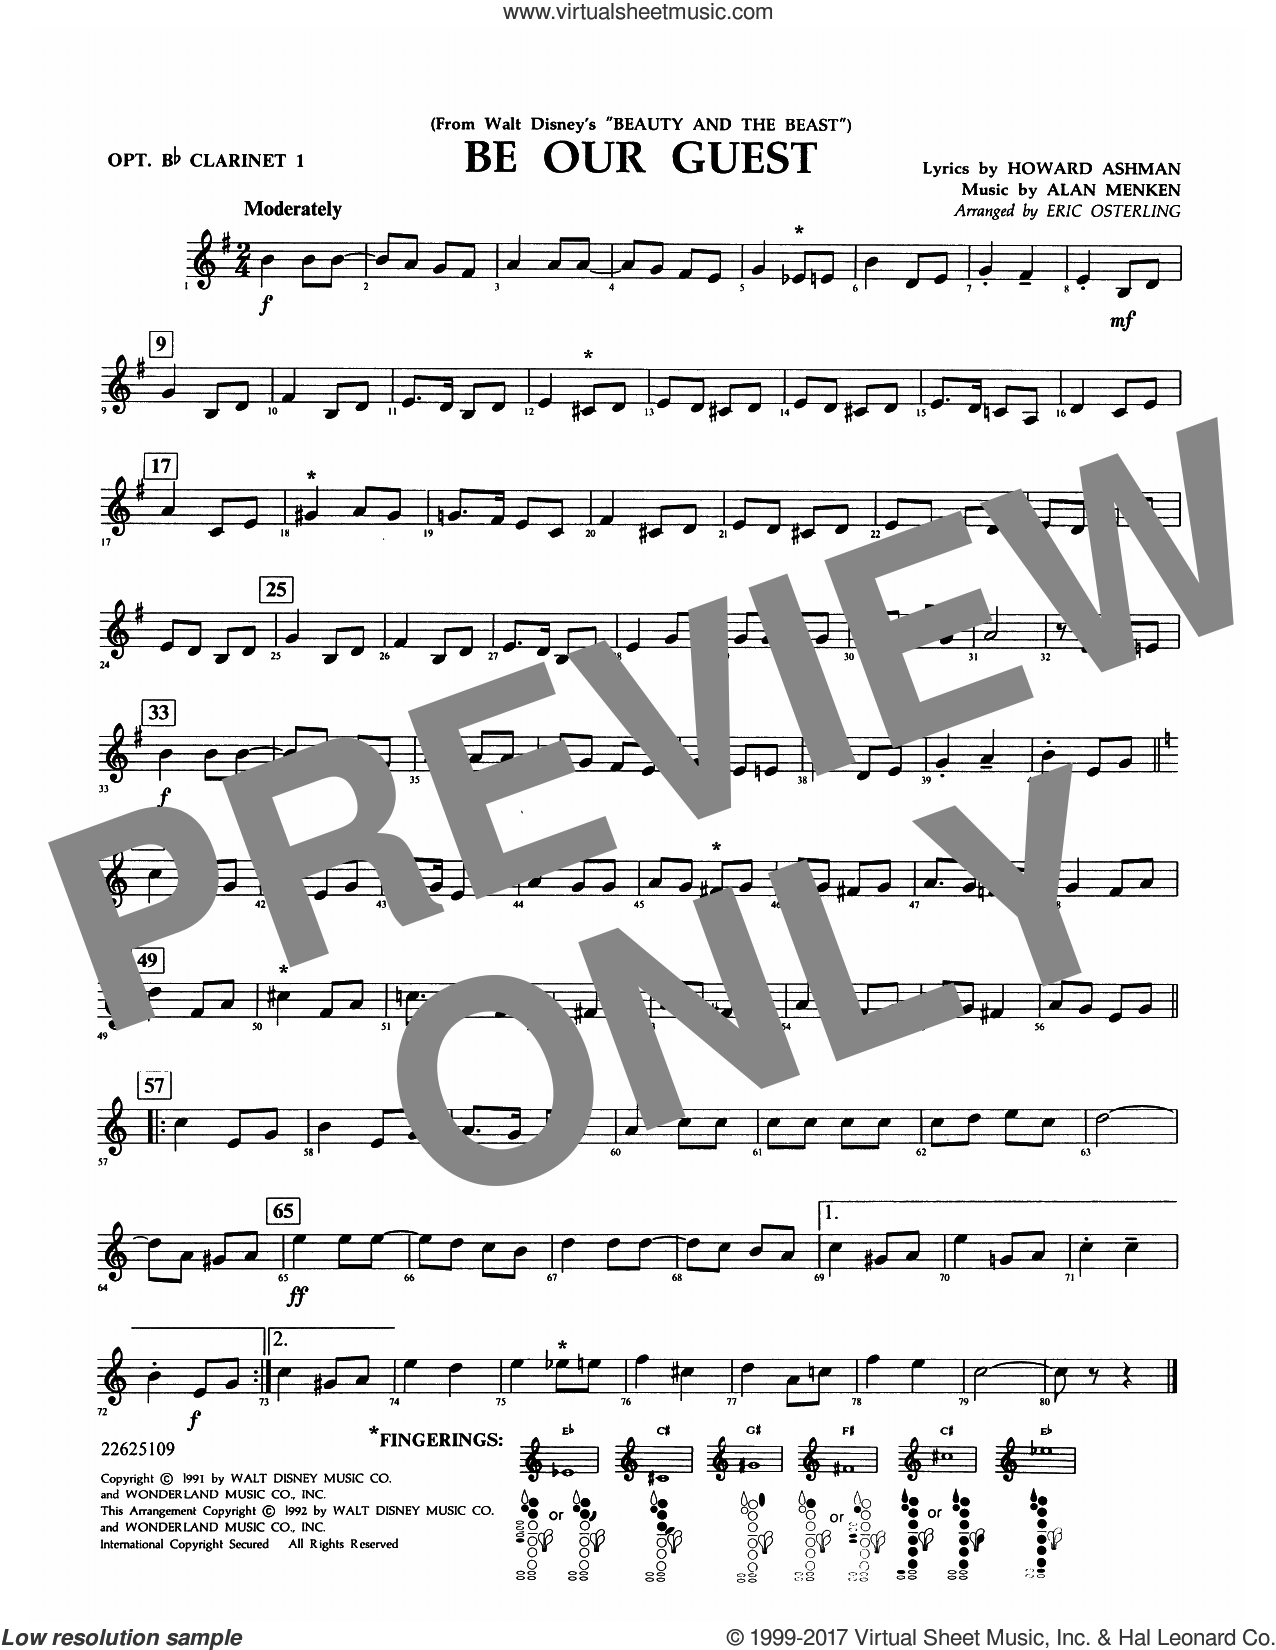 Be Our Guest (from Beauty And The Beast) (arr. Eric Osterling) sheet music for concert band (opt. Bb clarinet 1) by Alan Menken, Eric Osterling and Howard Ashman, intermediate skill level